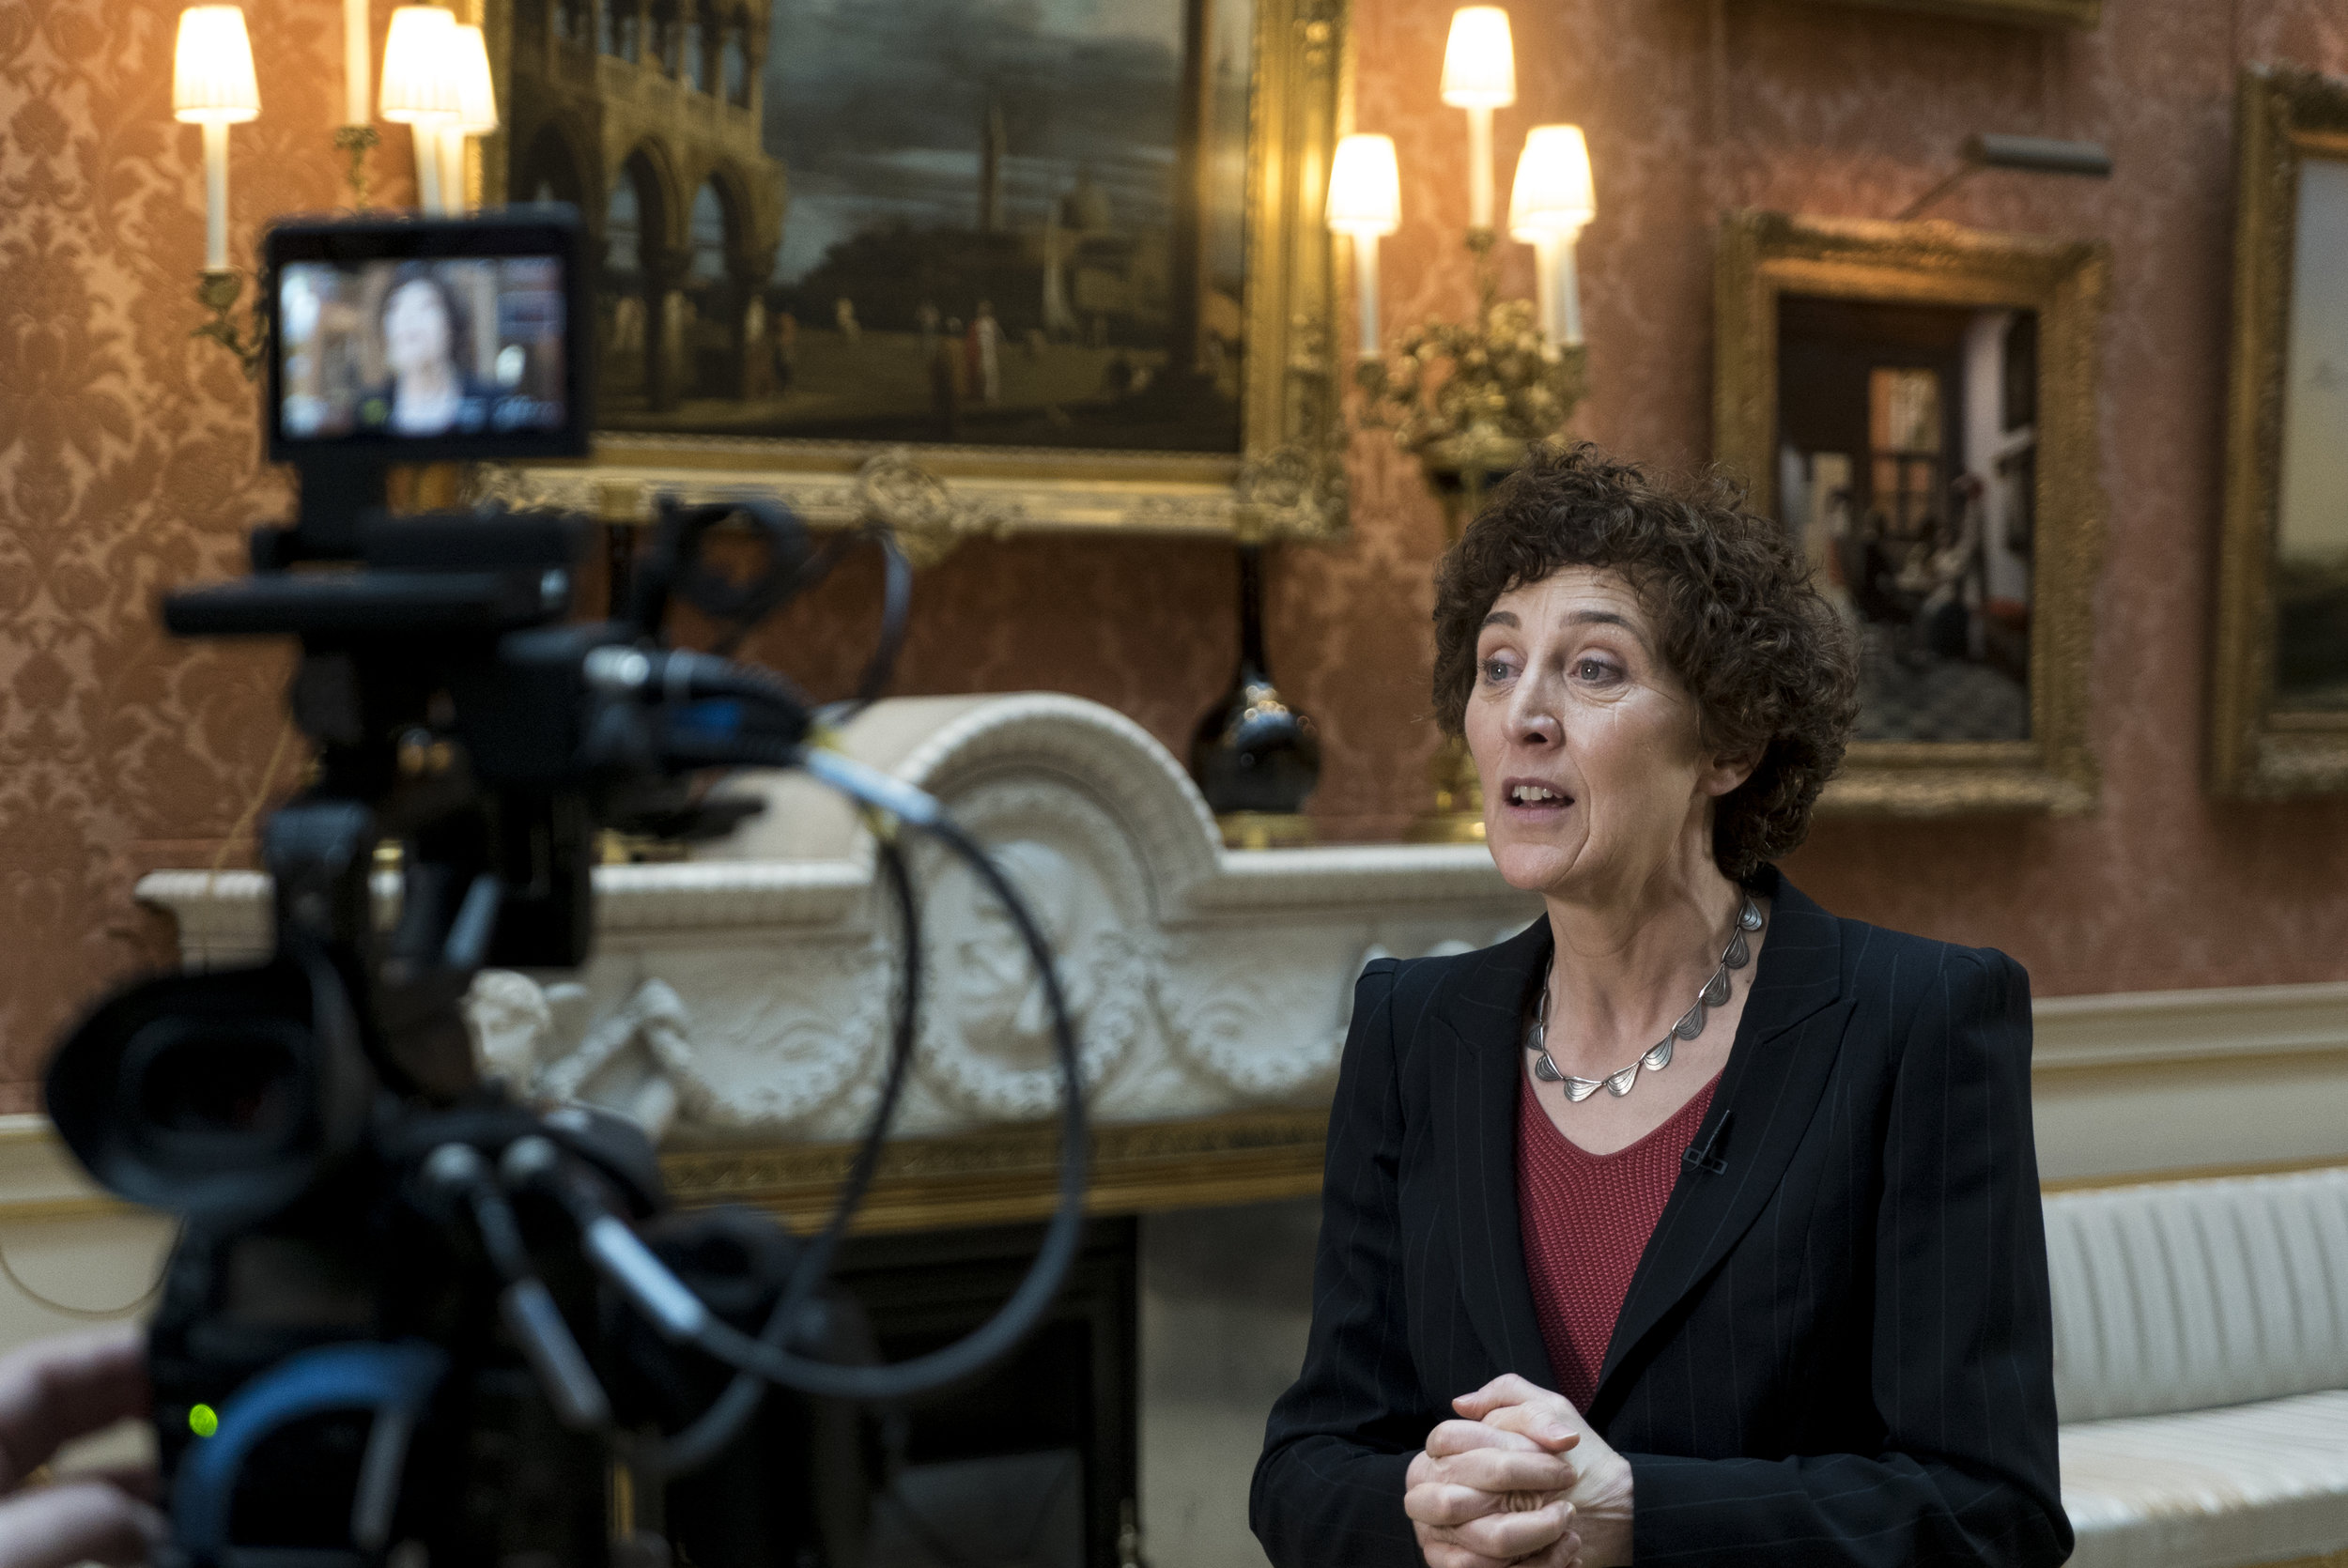 Filming with Lucy Whitaker at The Queen's Gallery, Buckingham Palace_2 © EXHIBITION ON SCREEN (David Bickerstaff)